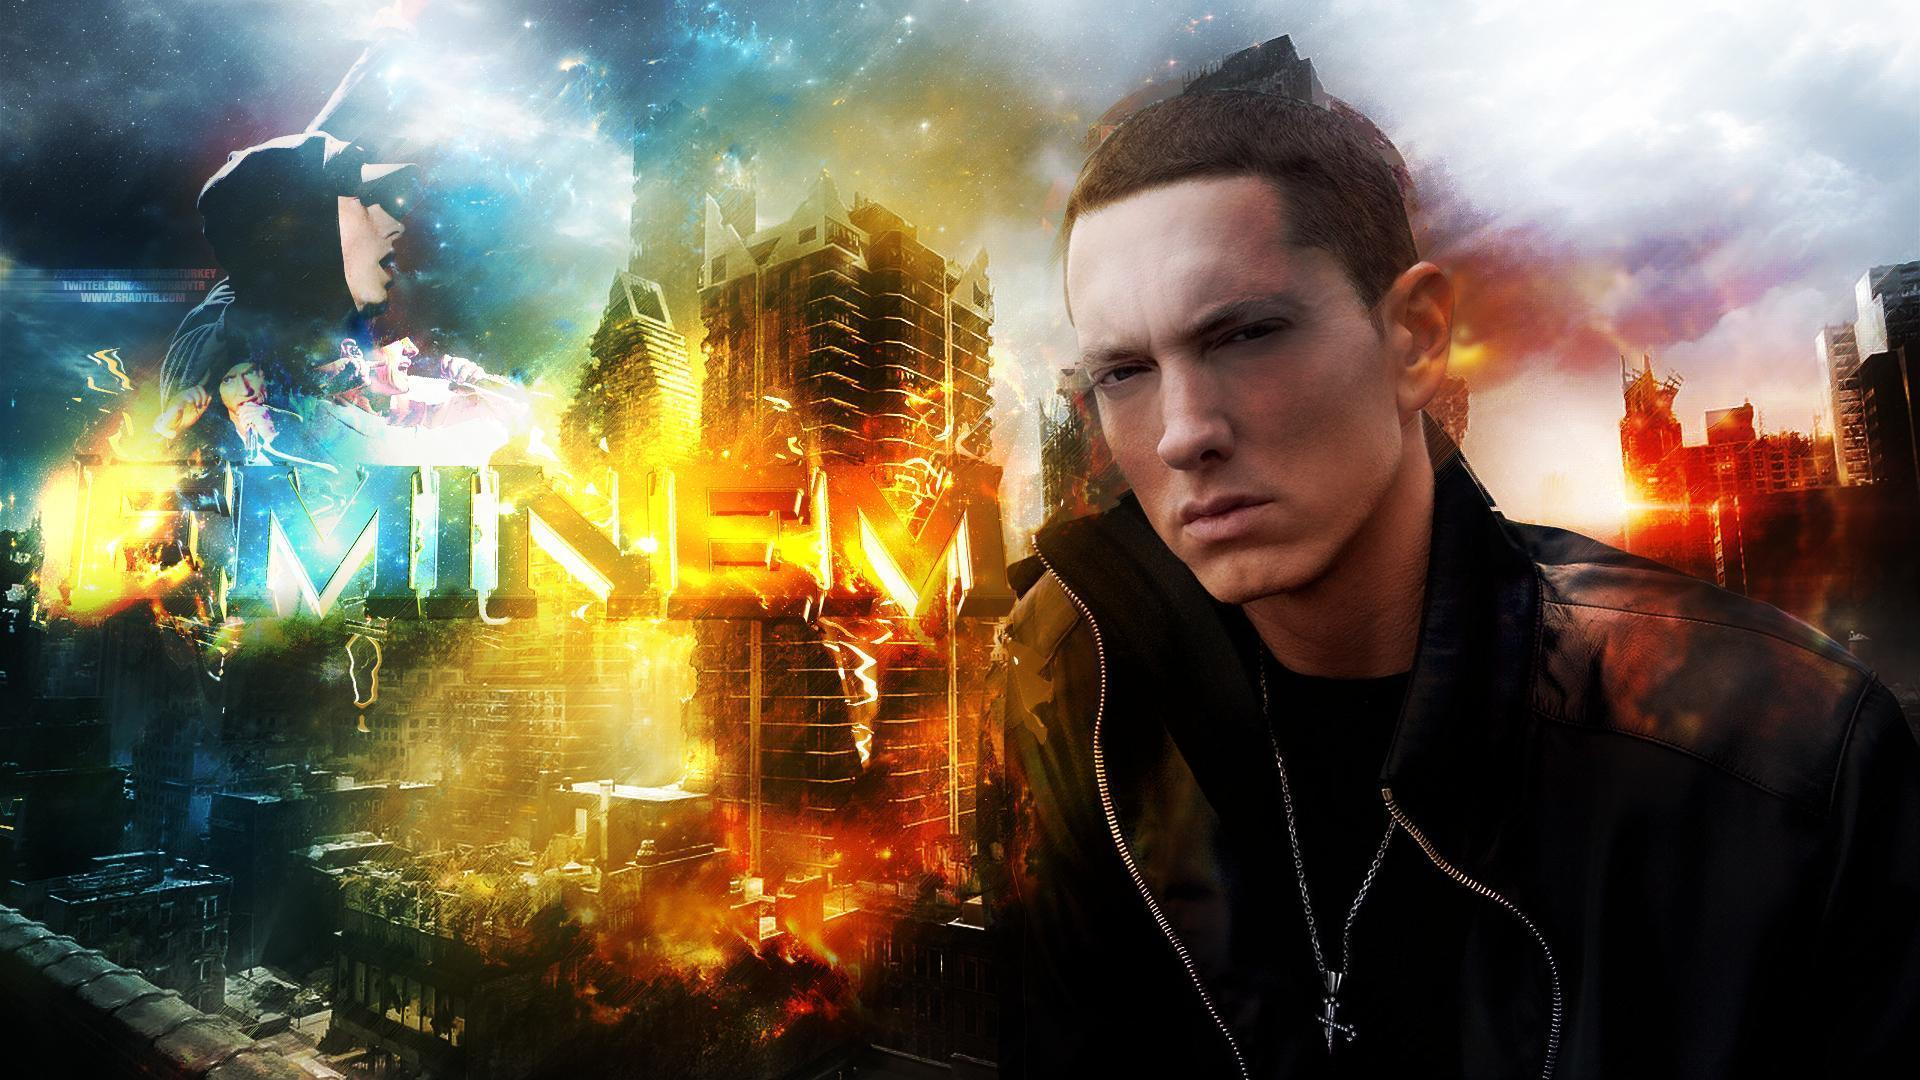 Pin Eminem Wallpaper Wallpapers Hd on Pinterest